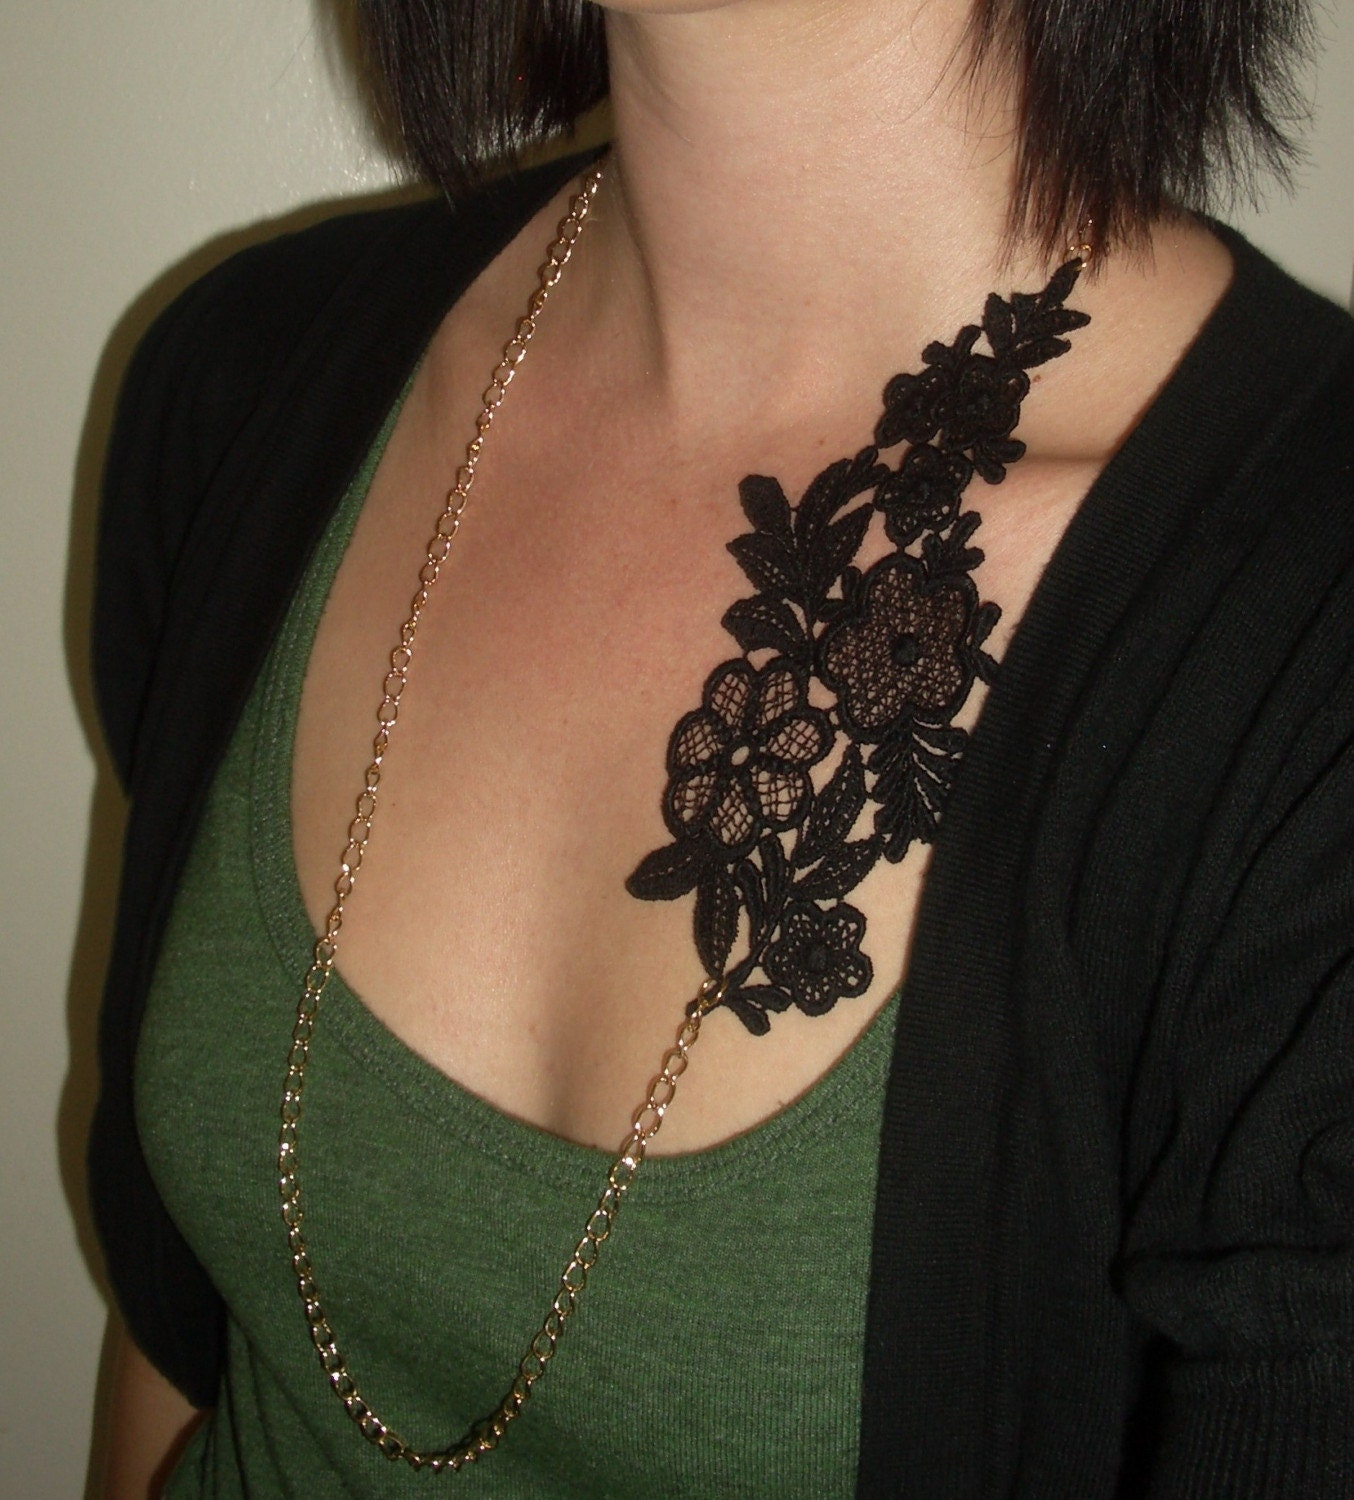 Vintage Inspired Lace Necklace  Black and gold by TessaKim on Etsy from etsy.com